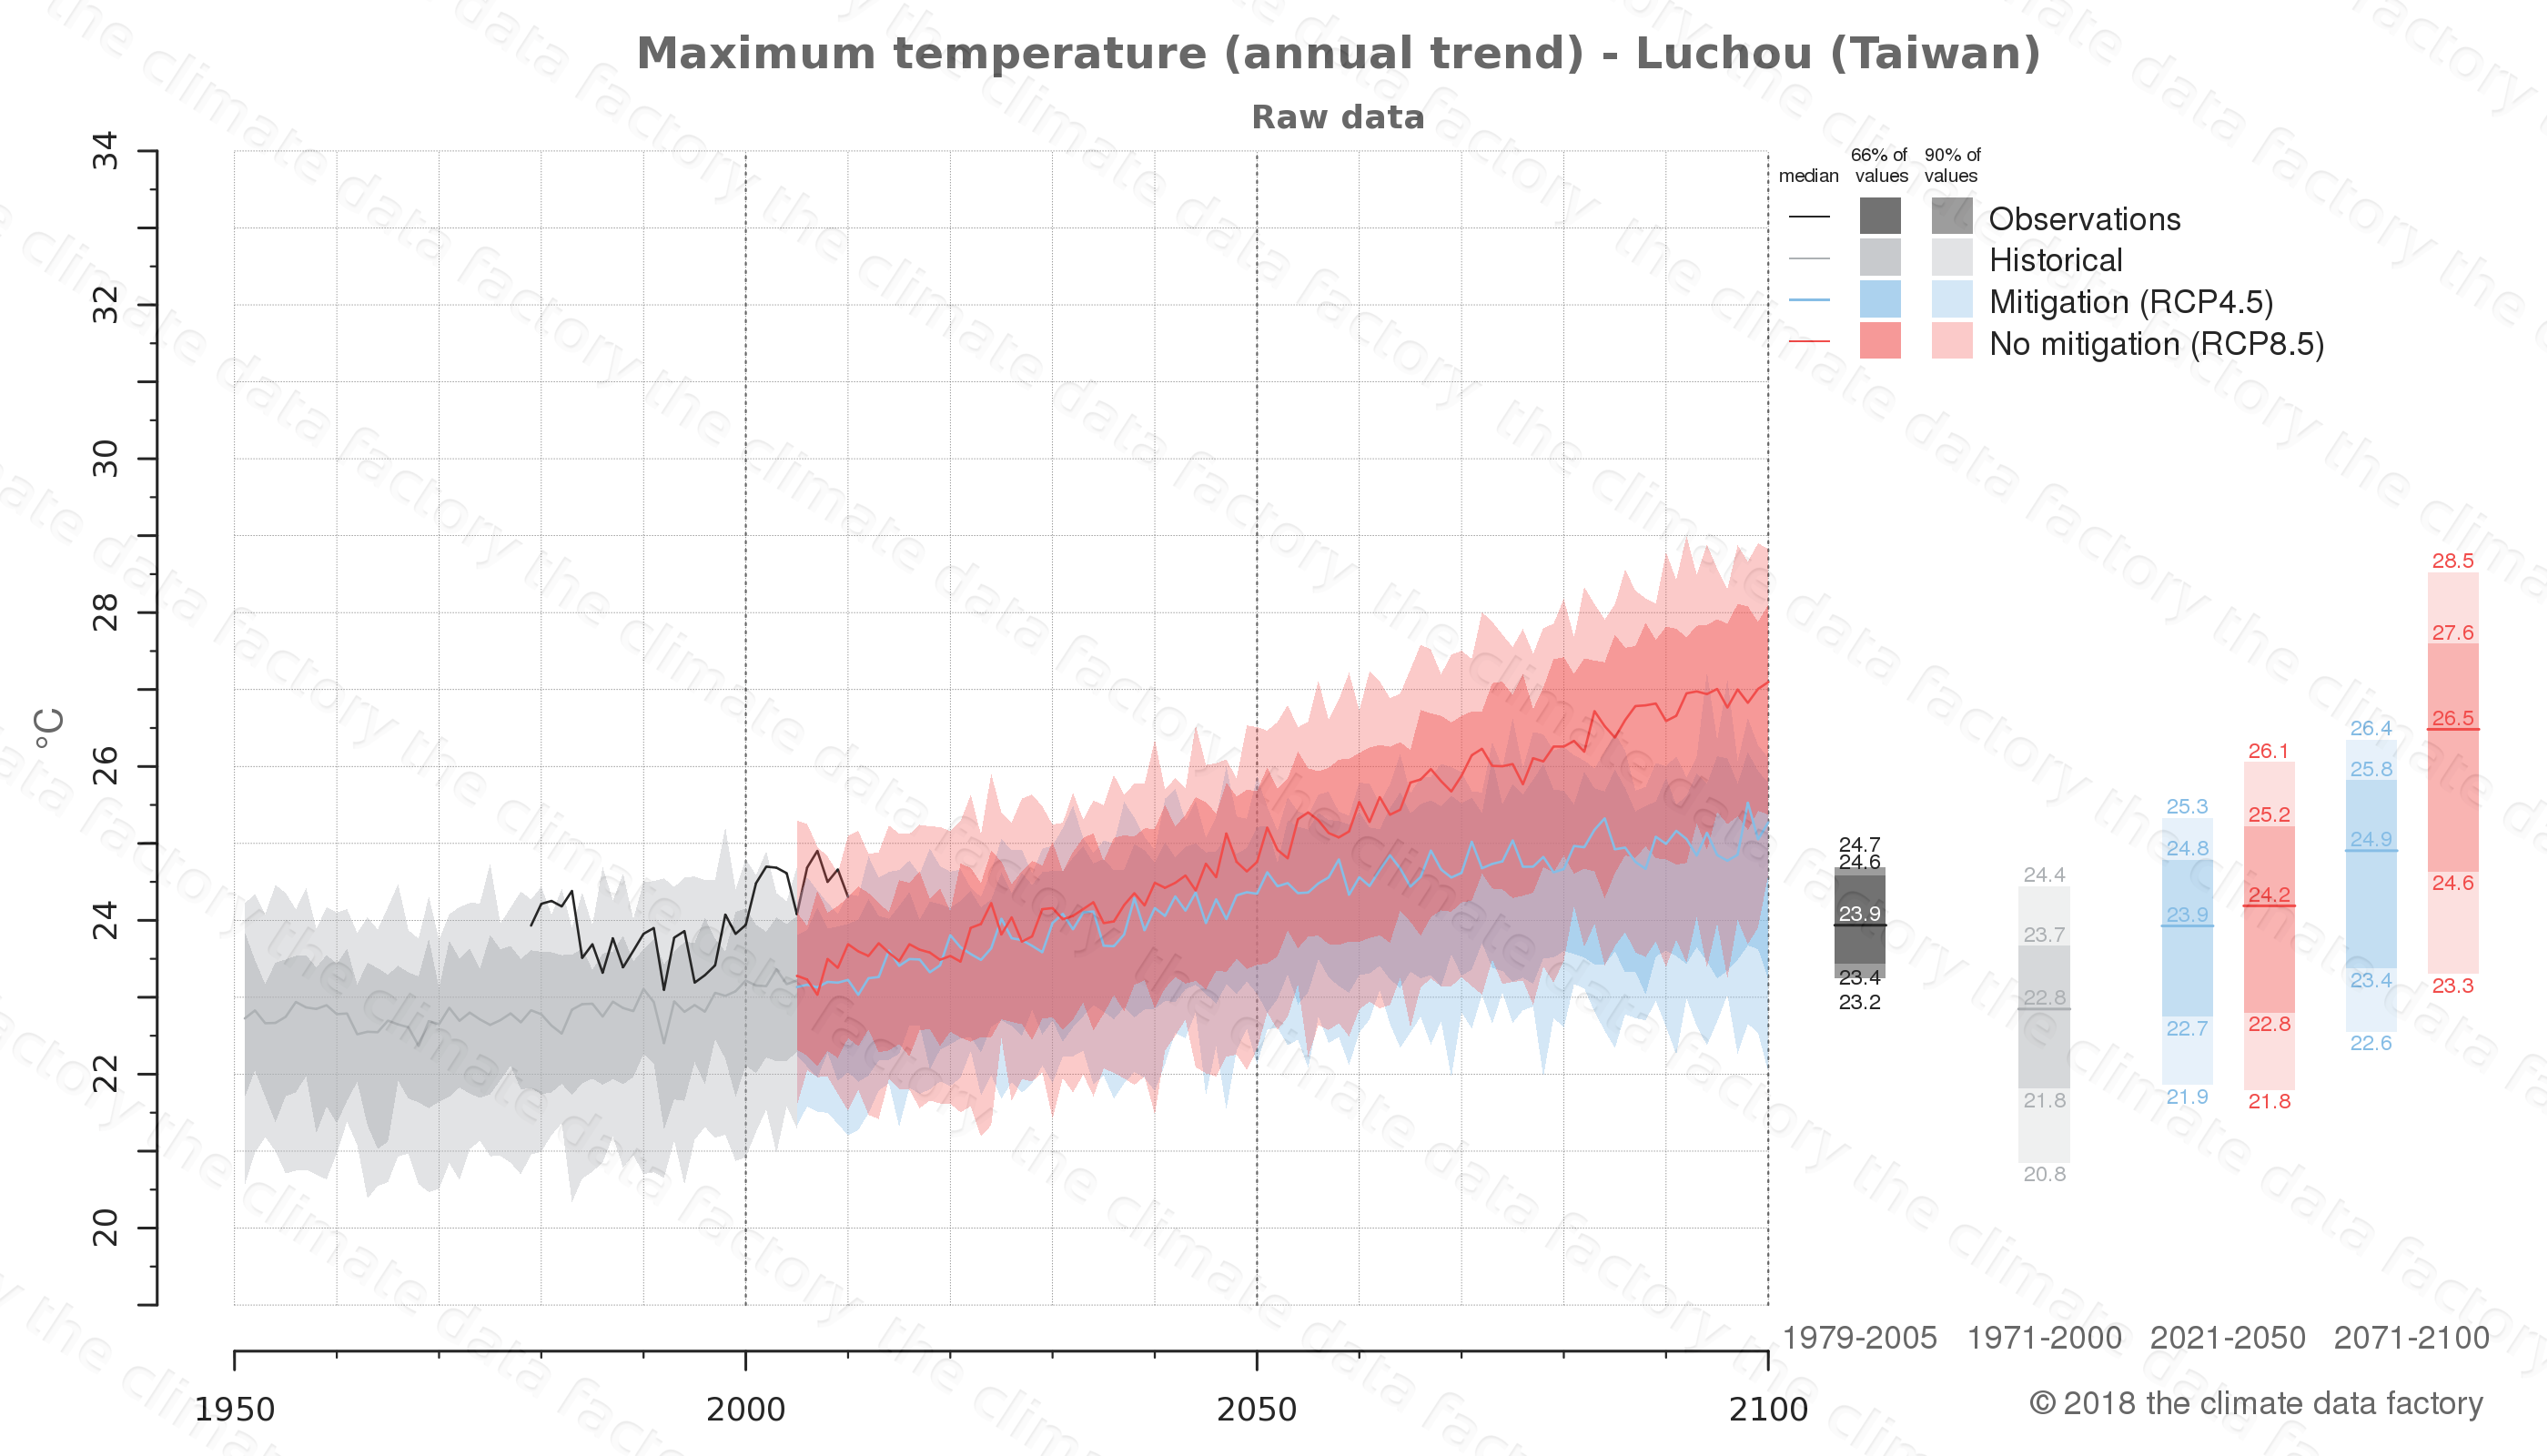 climate change data policy adaptation climate graph city data maximum-temperature luchou taiwan